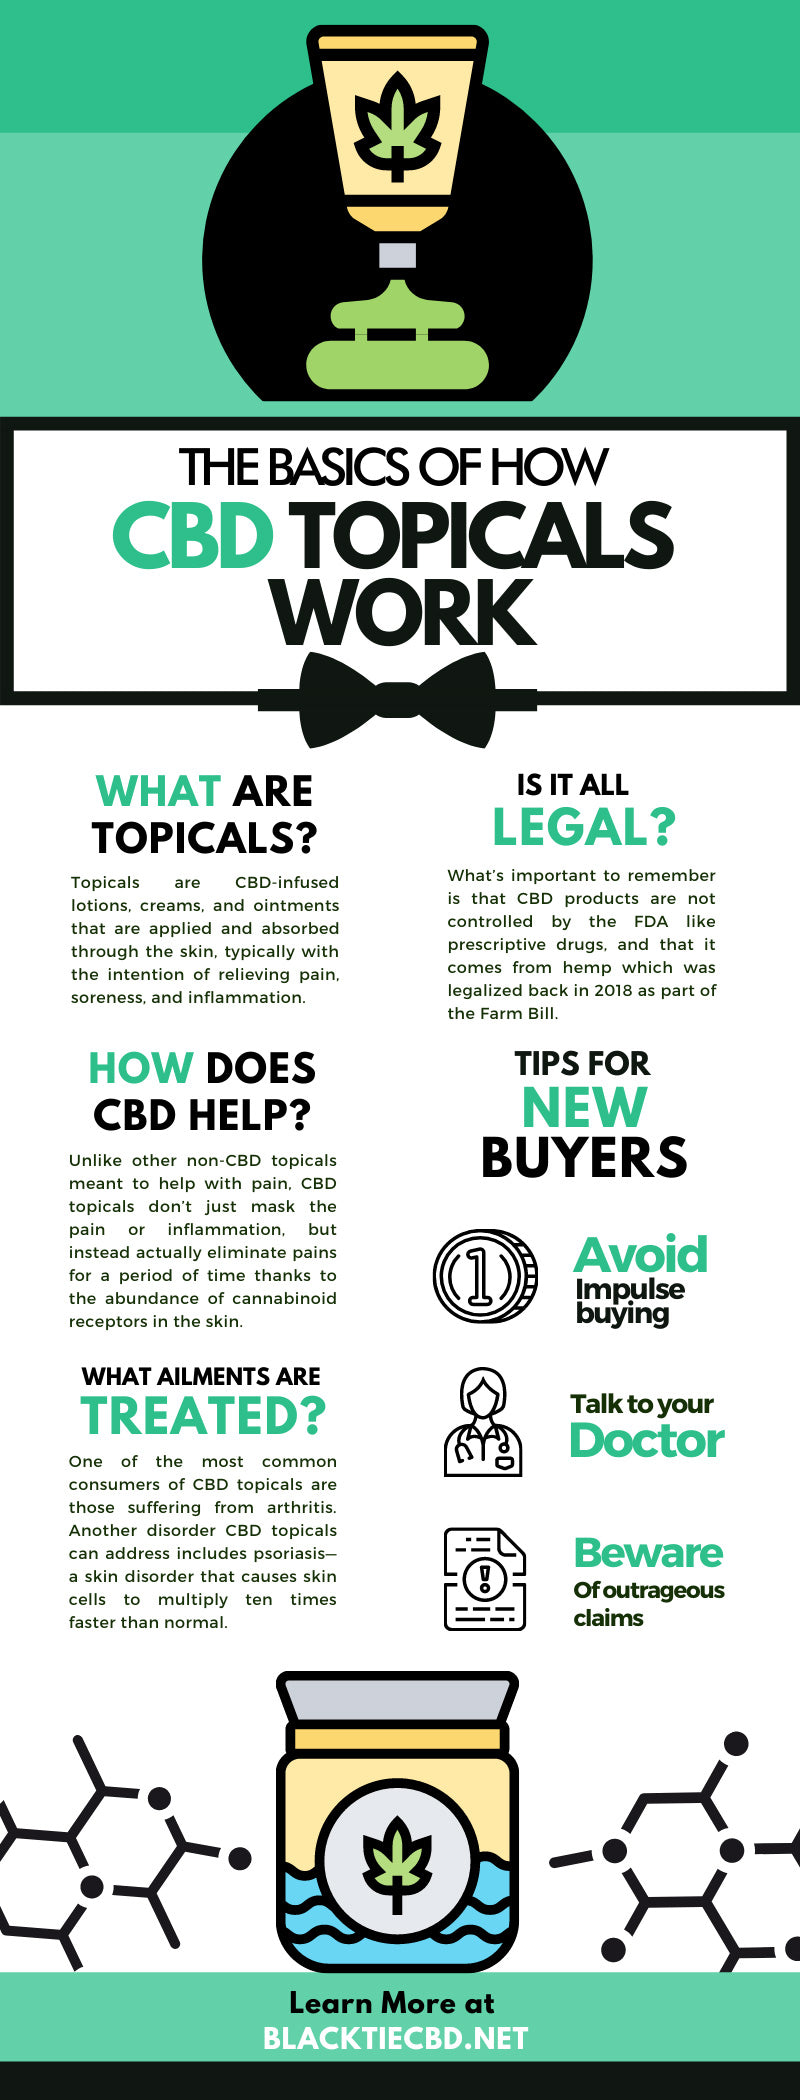 The Basics of How CBD Topicals Work